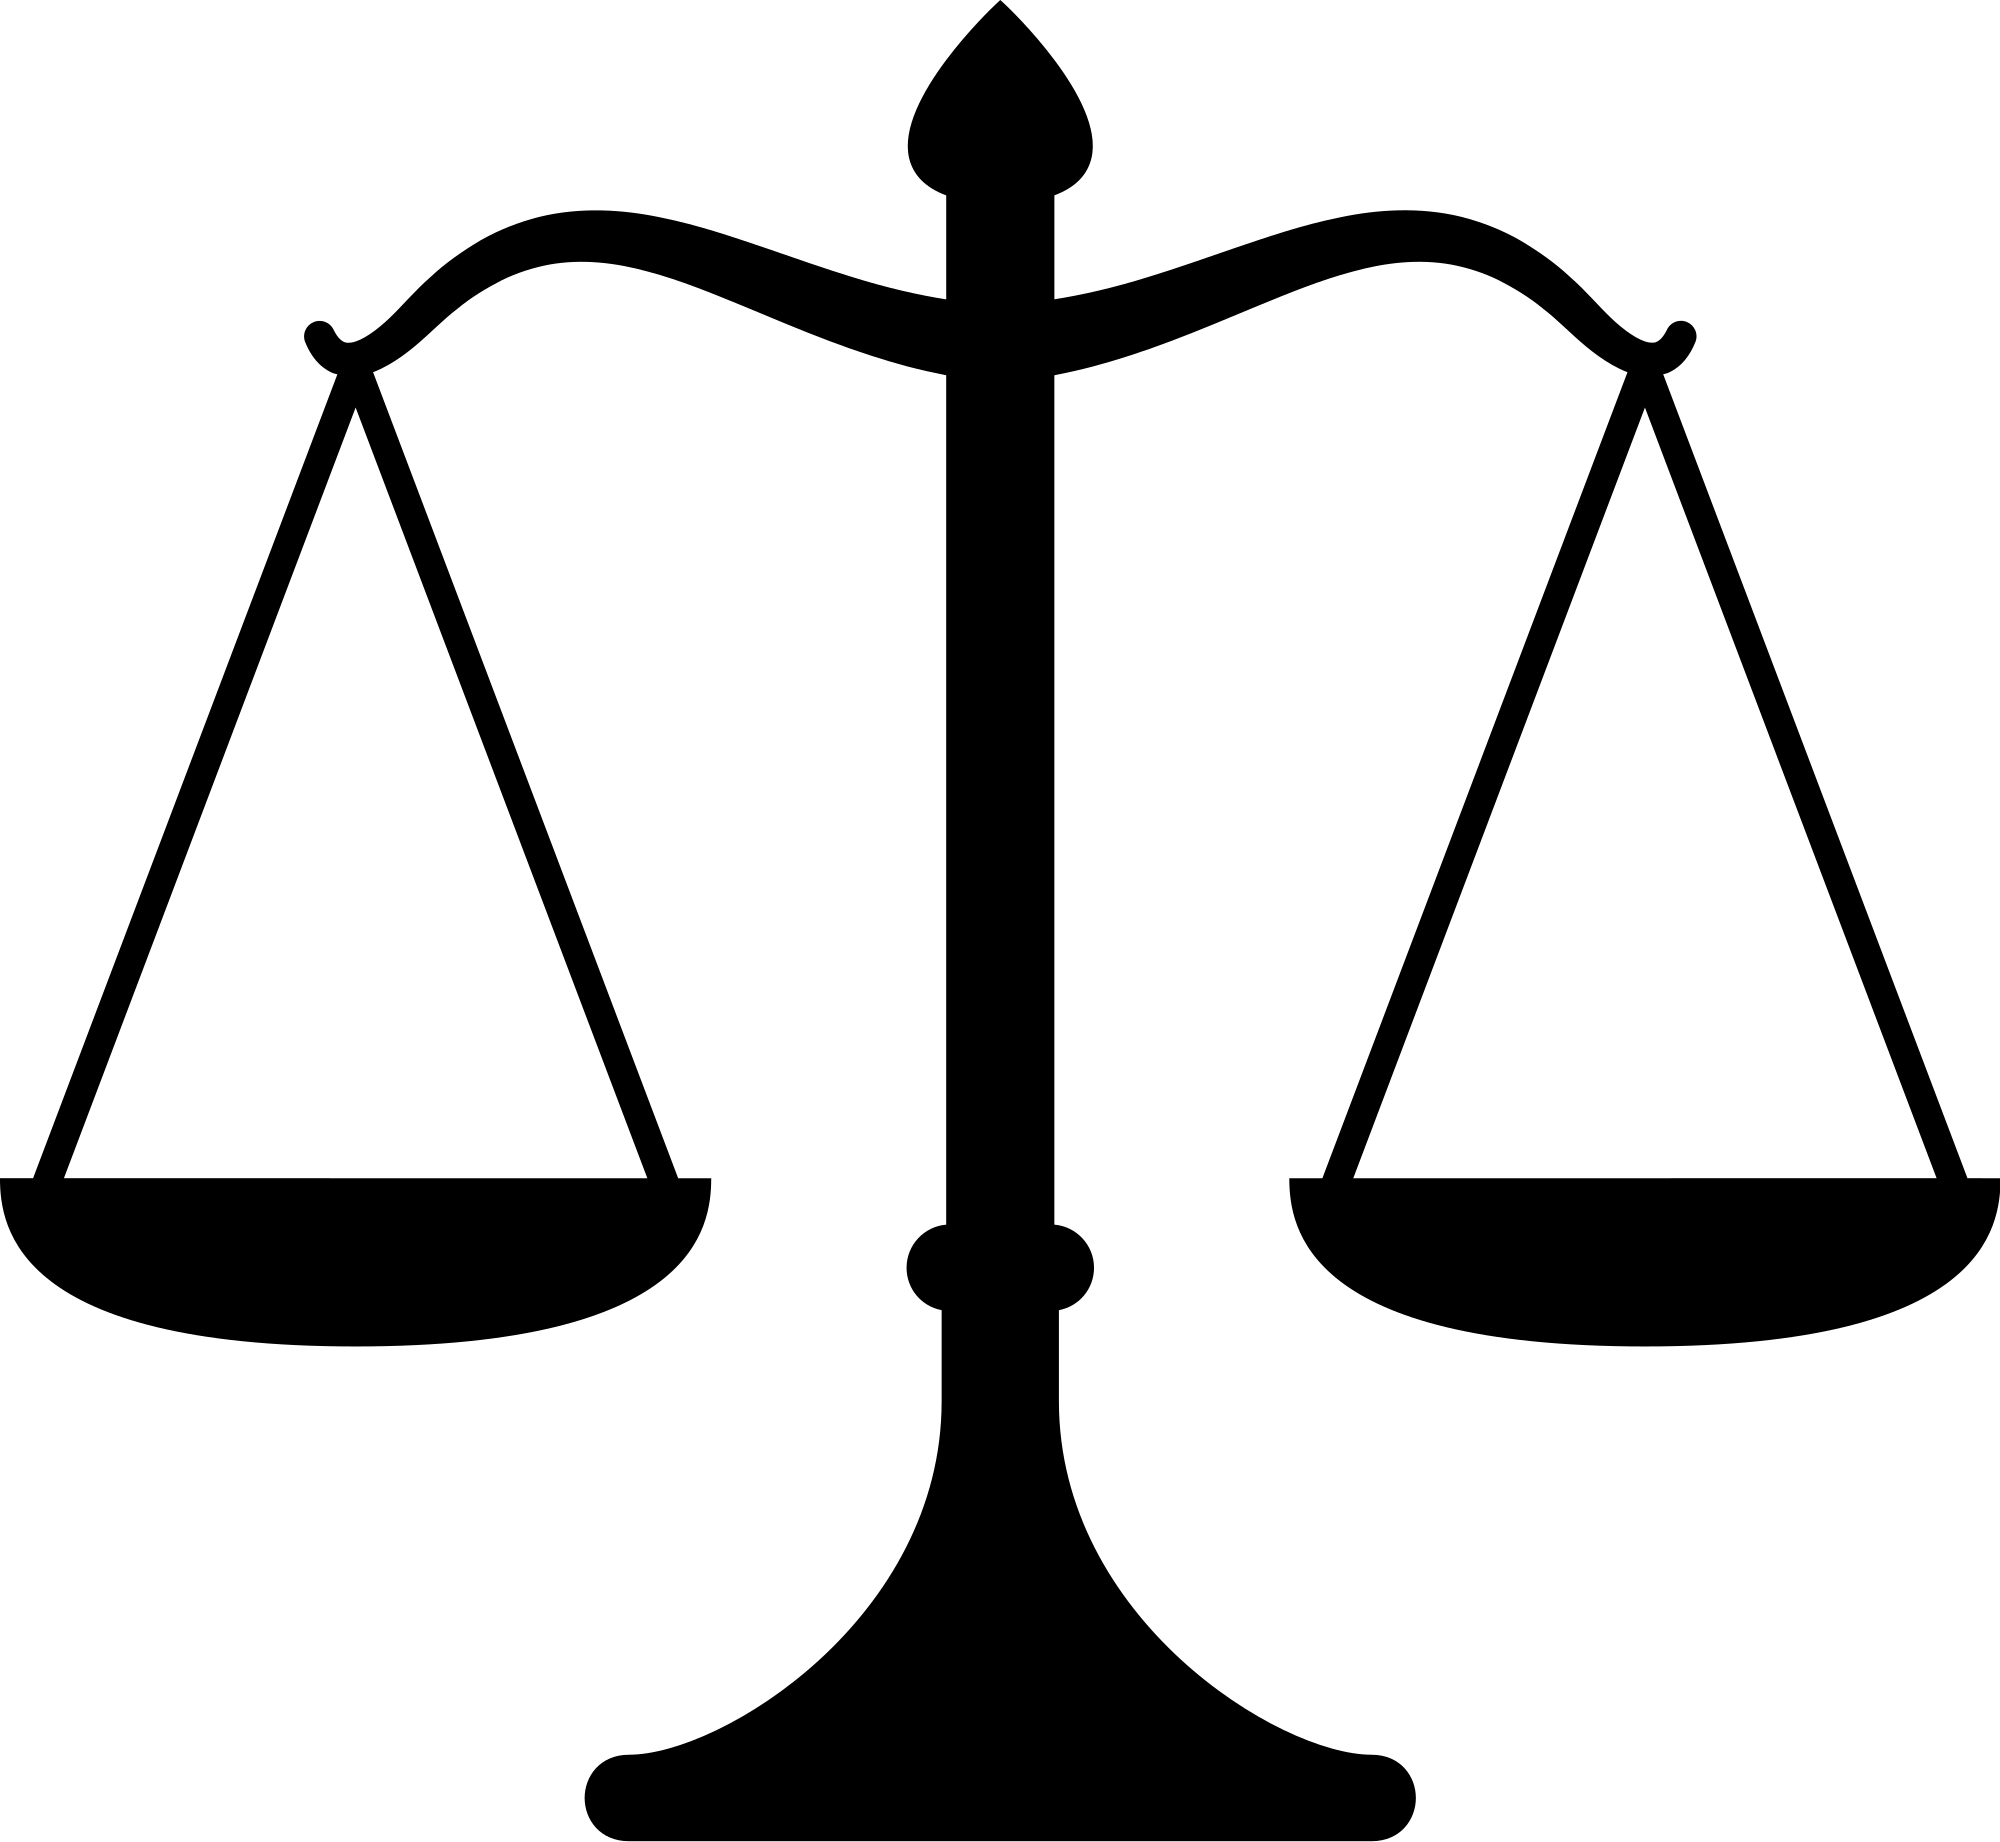 Gavel Clipart Scales Gavel Scales Transparent Free For